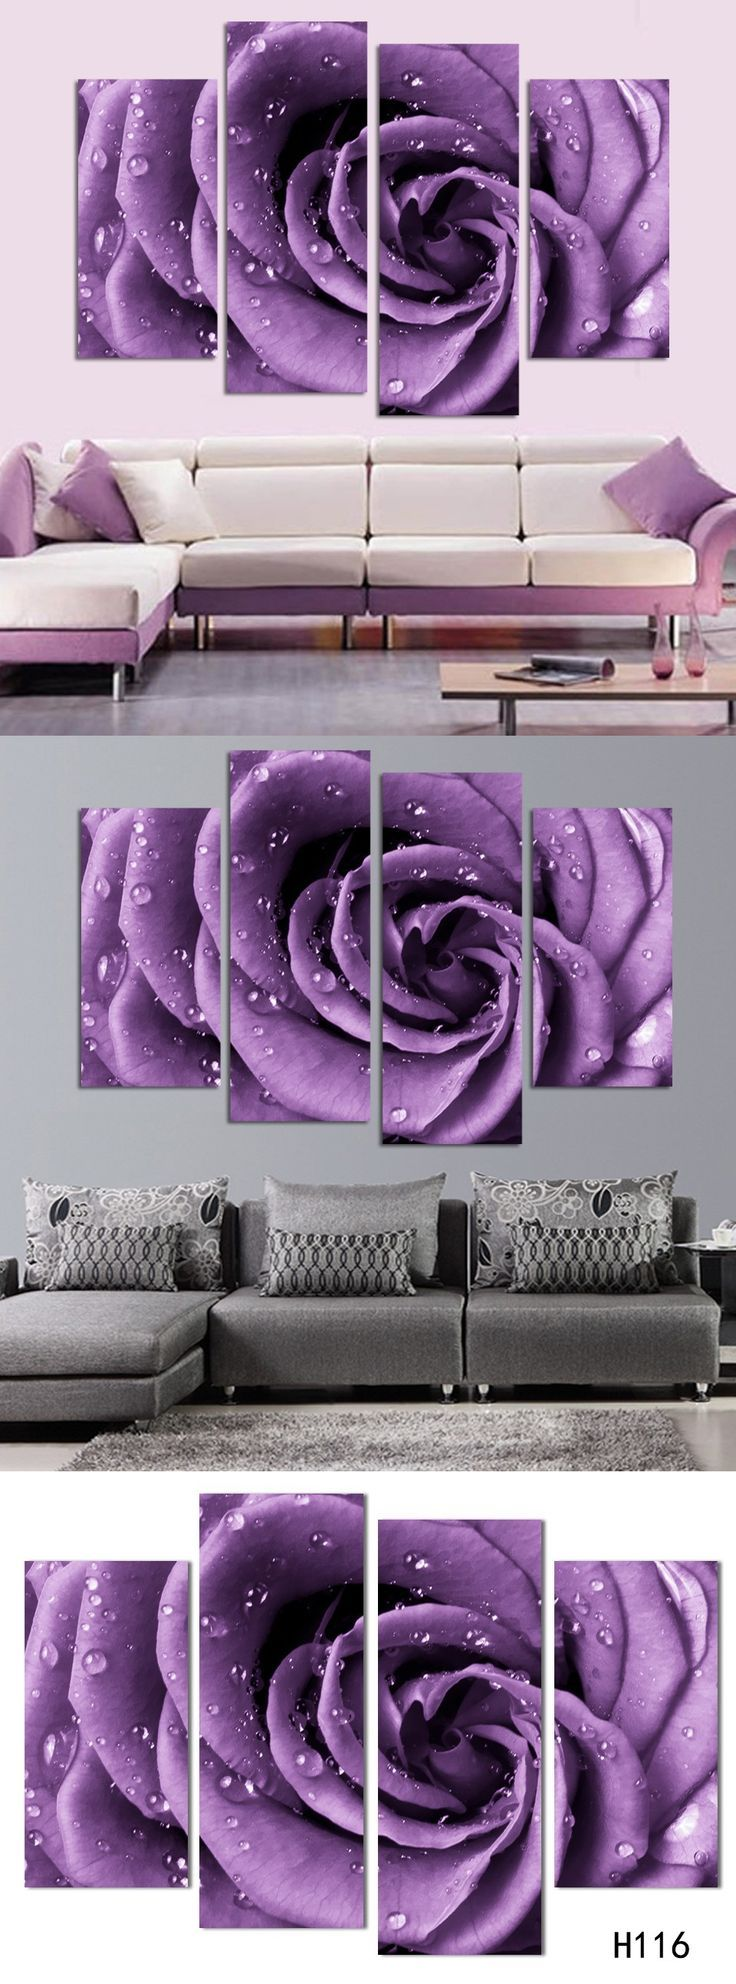 3 piece wall art white purple lover flower big perfect canvas wall art on canvas picture modern picture home decor - Purple Home Decor